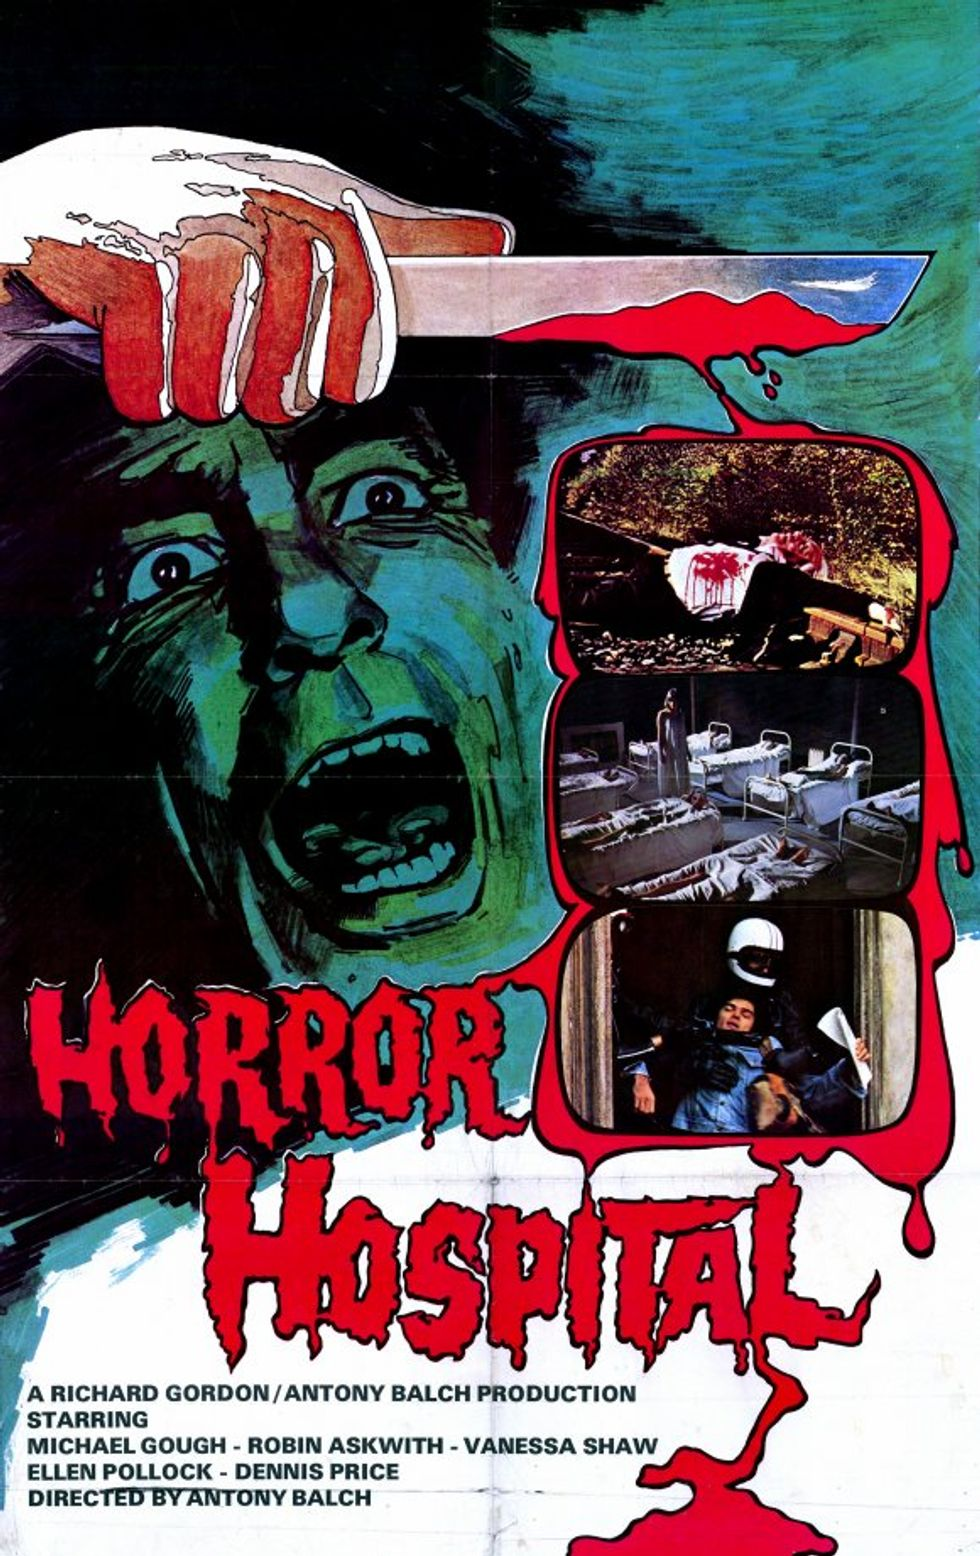 Horror Hospital On DVD!